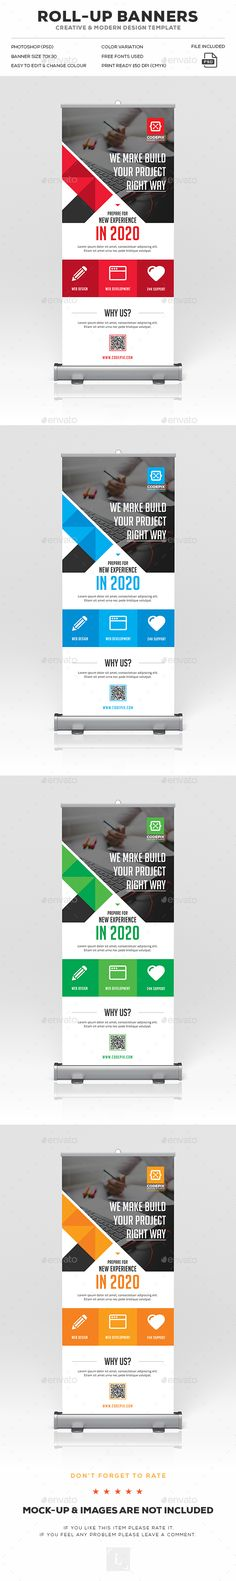 Corporate Roll-Up Banner Ads Design Template - Signage Print Template PSD. Download here: https://graphicriver.net/item/corporate-rollup-banner/17044205?s_rank=42&ref=yinkira